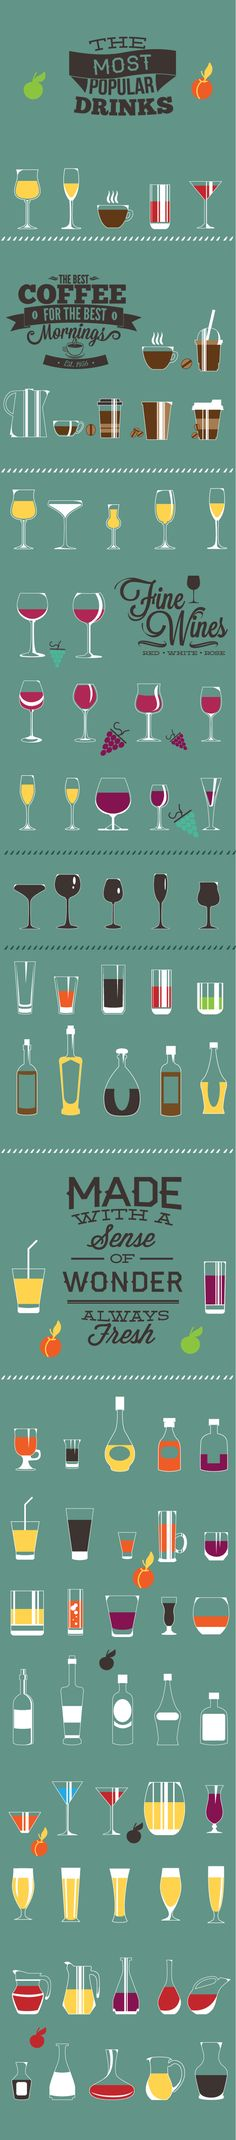 Flat elements by Adina Neculae, via Behance #infographic